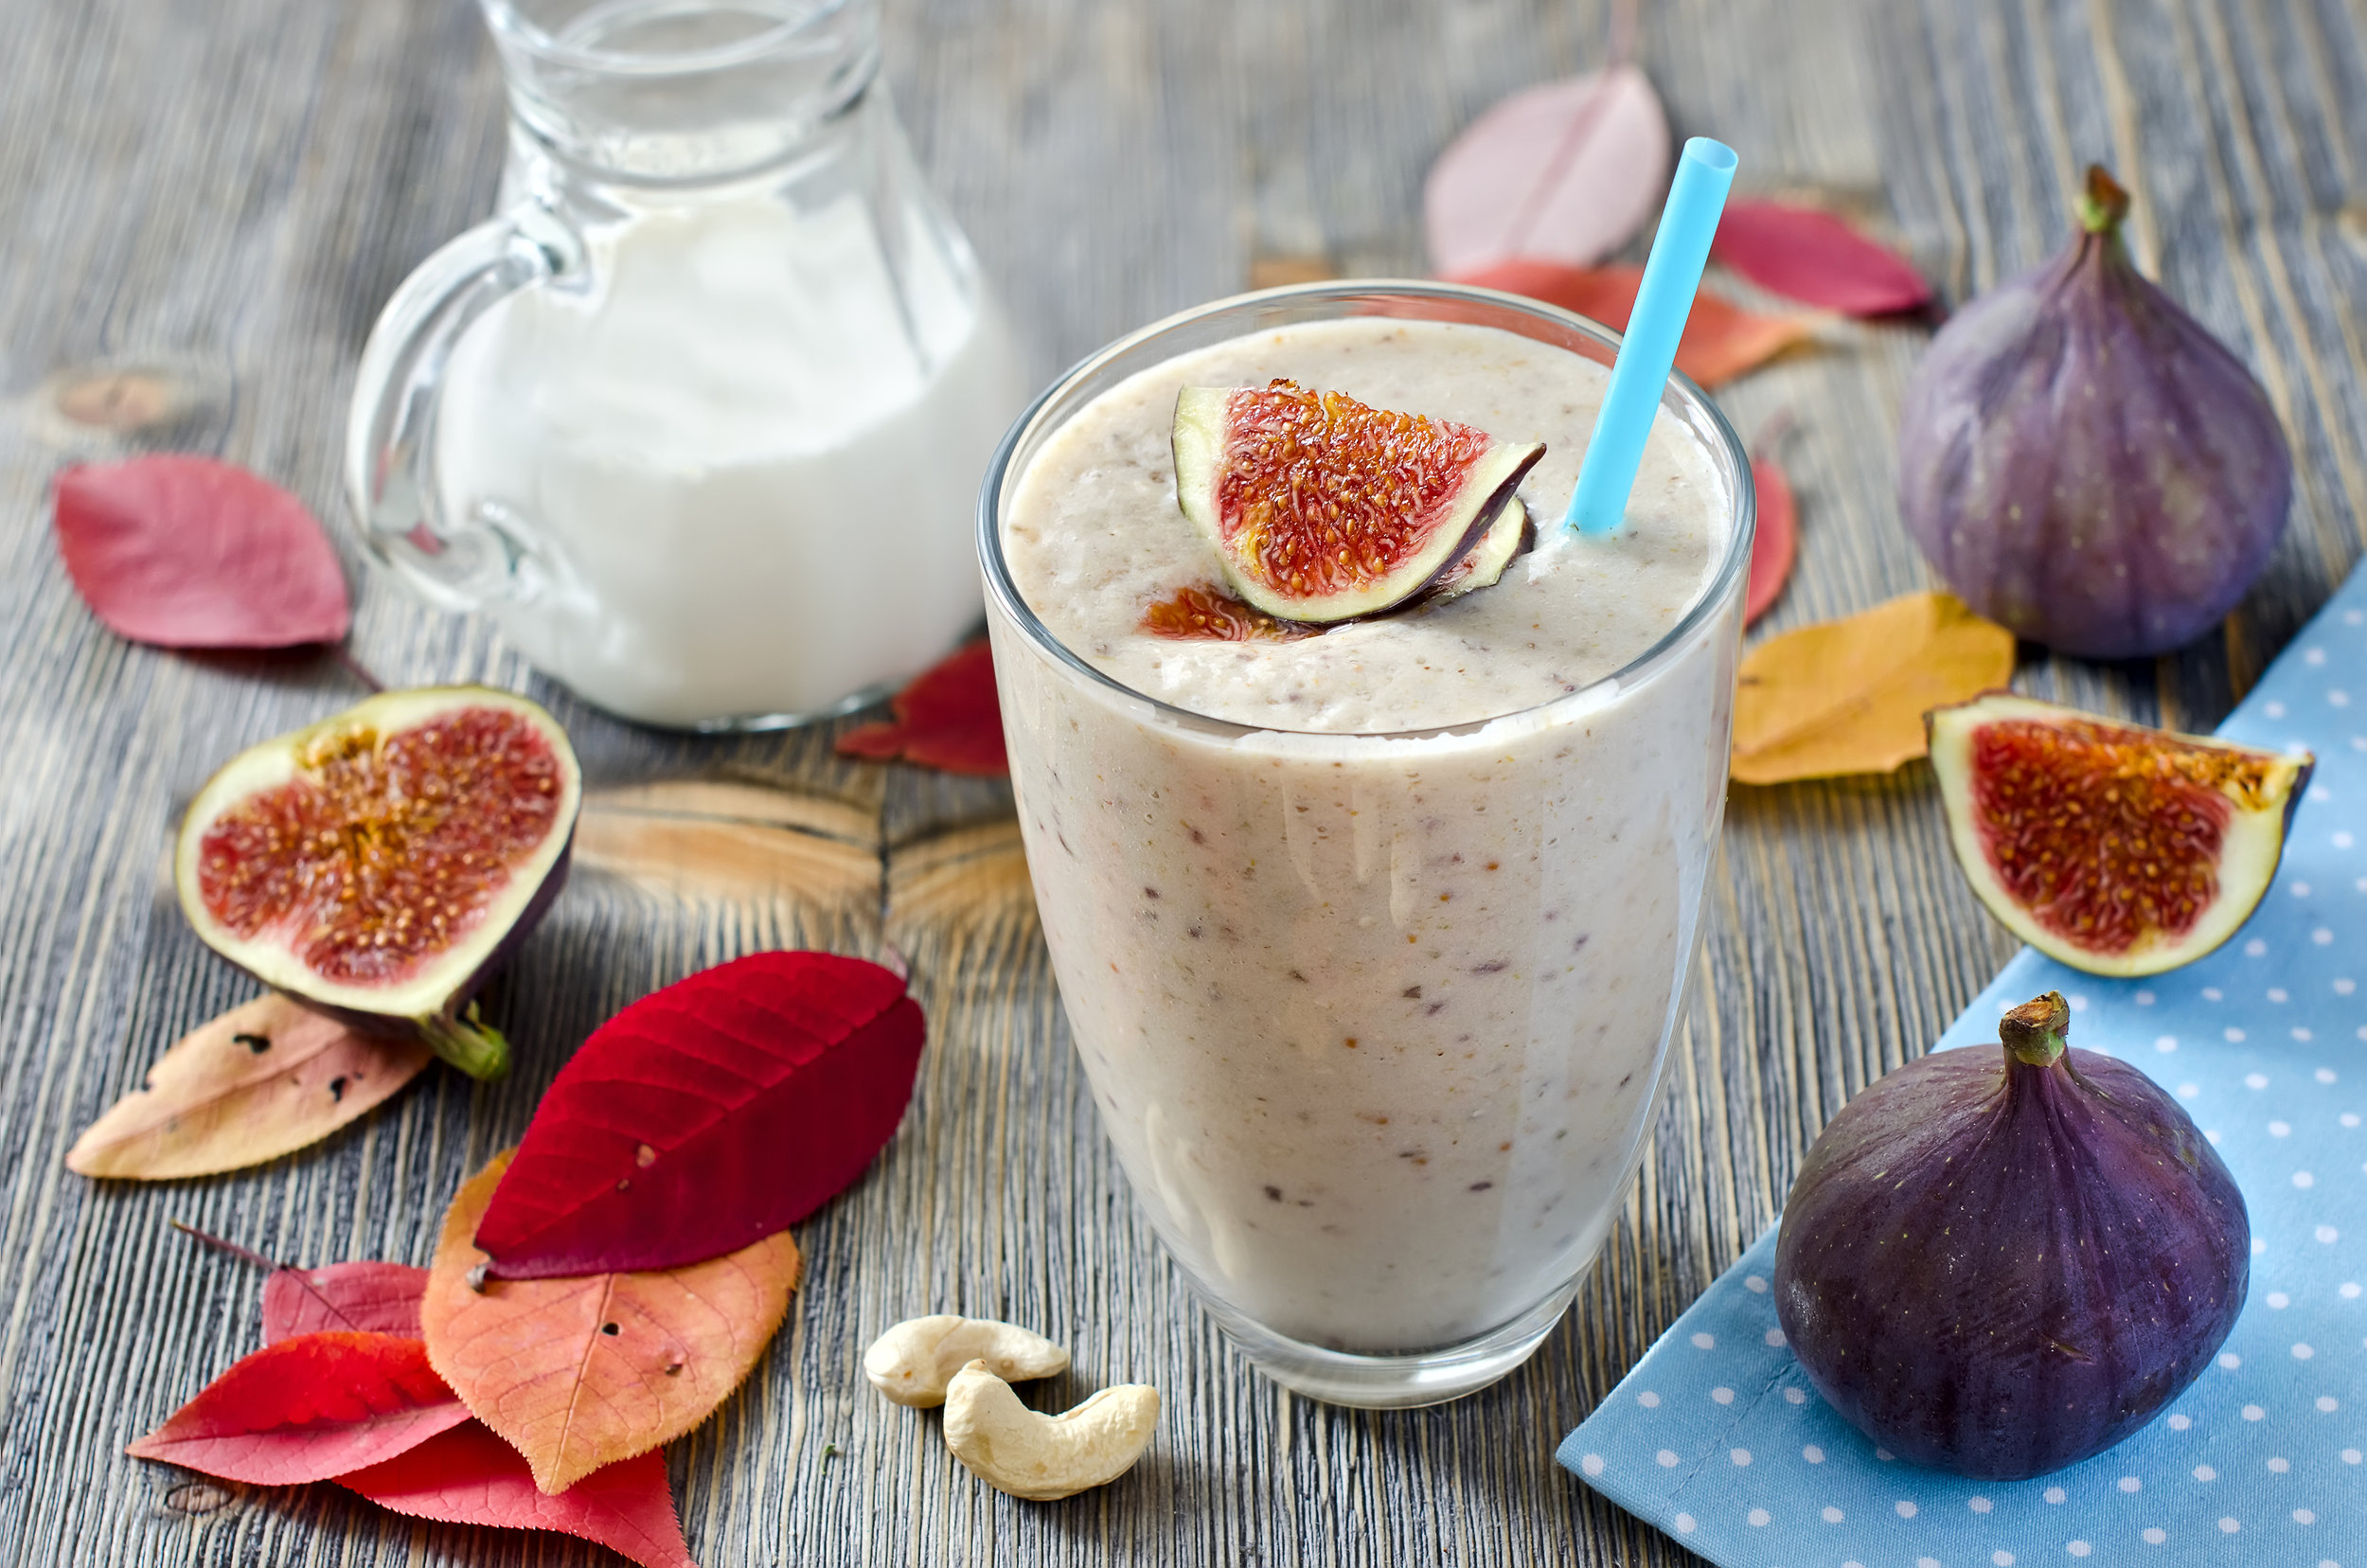 bigstock-Fresh-Smoothie-With-Figs-And-C-98546363.jpg